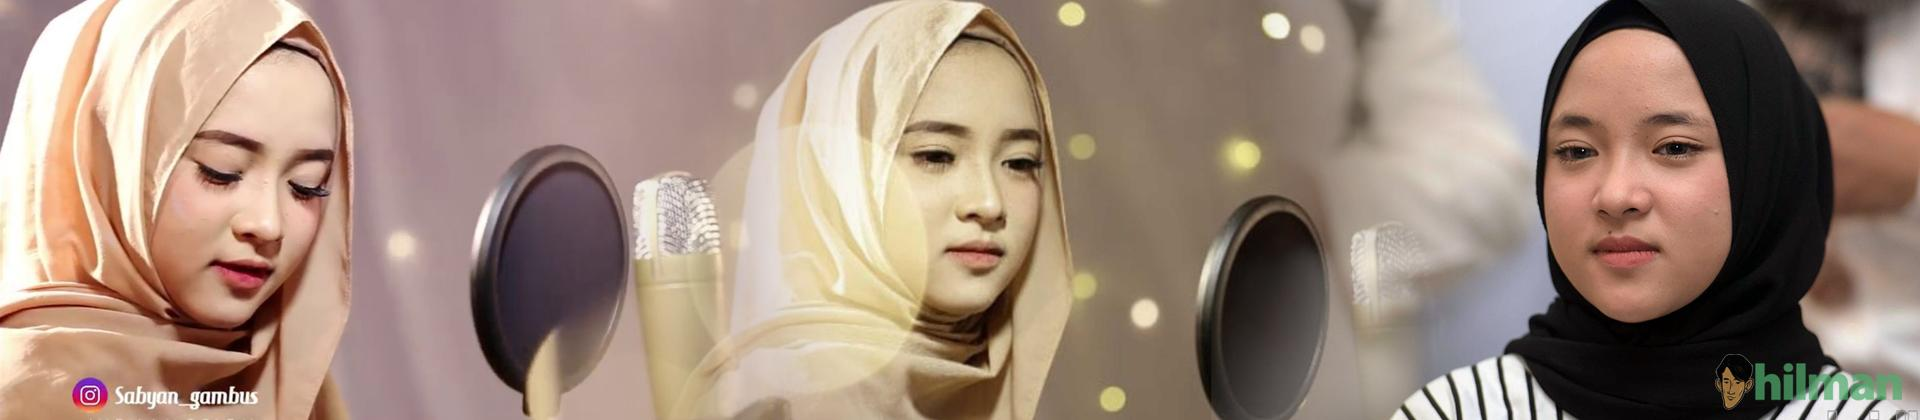 Nissa Sabyan Gambus merilis single...